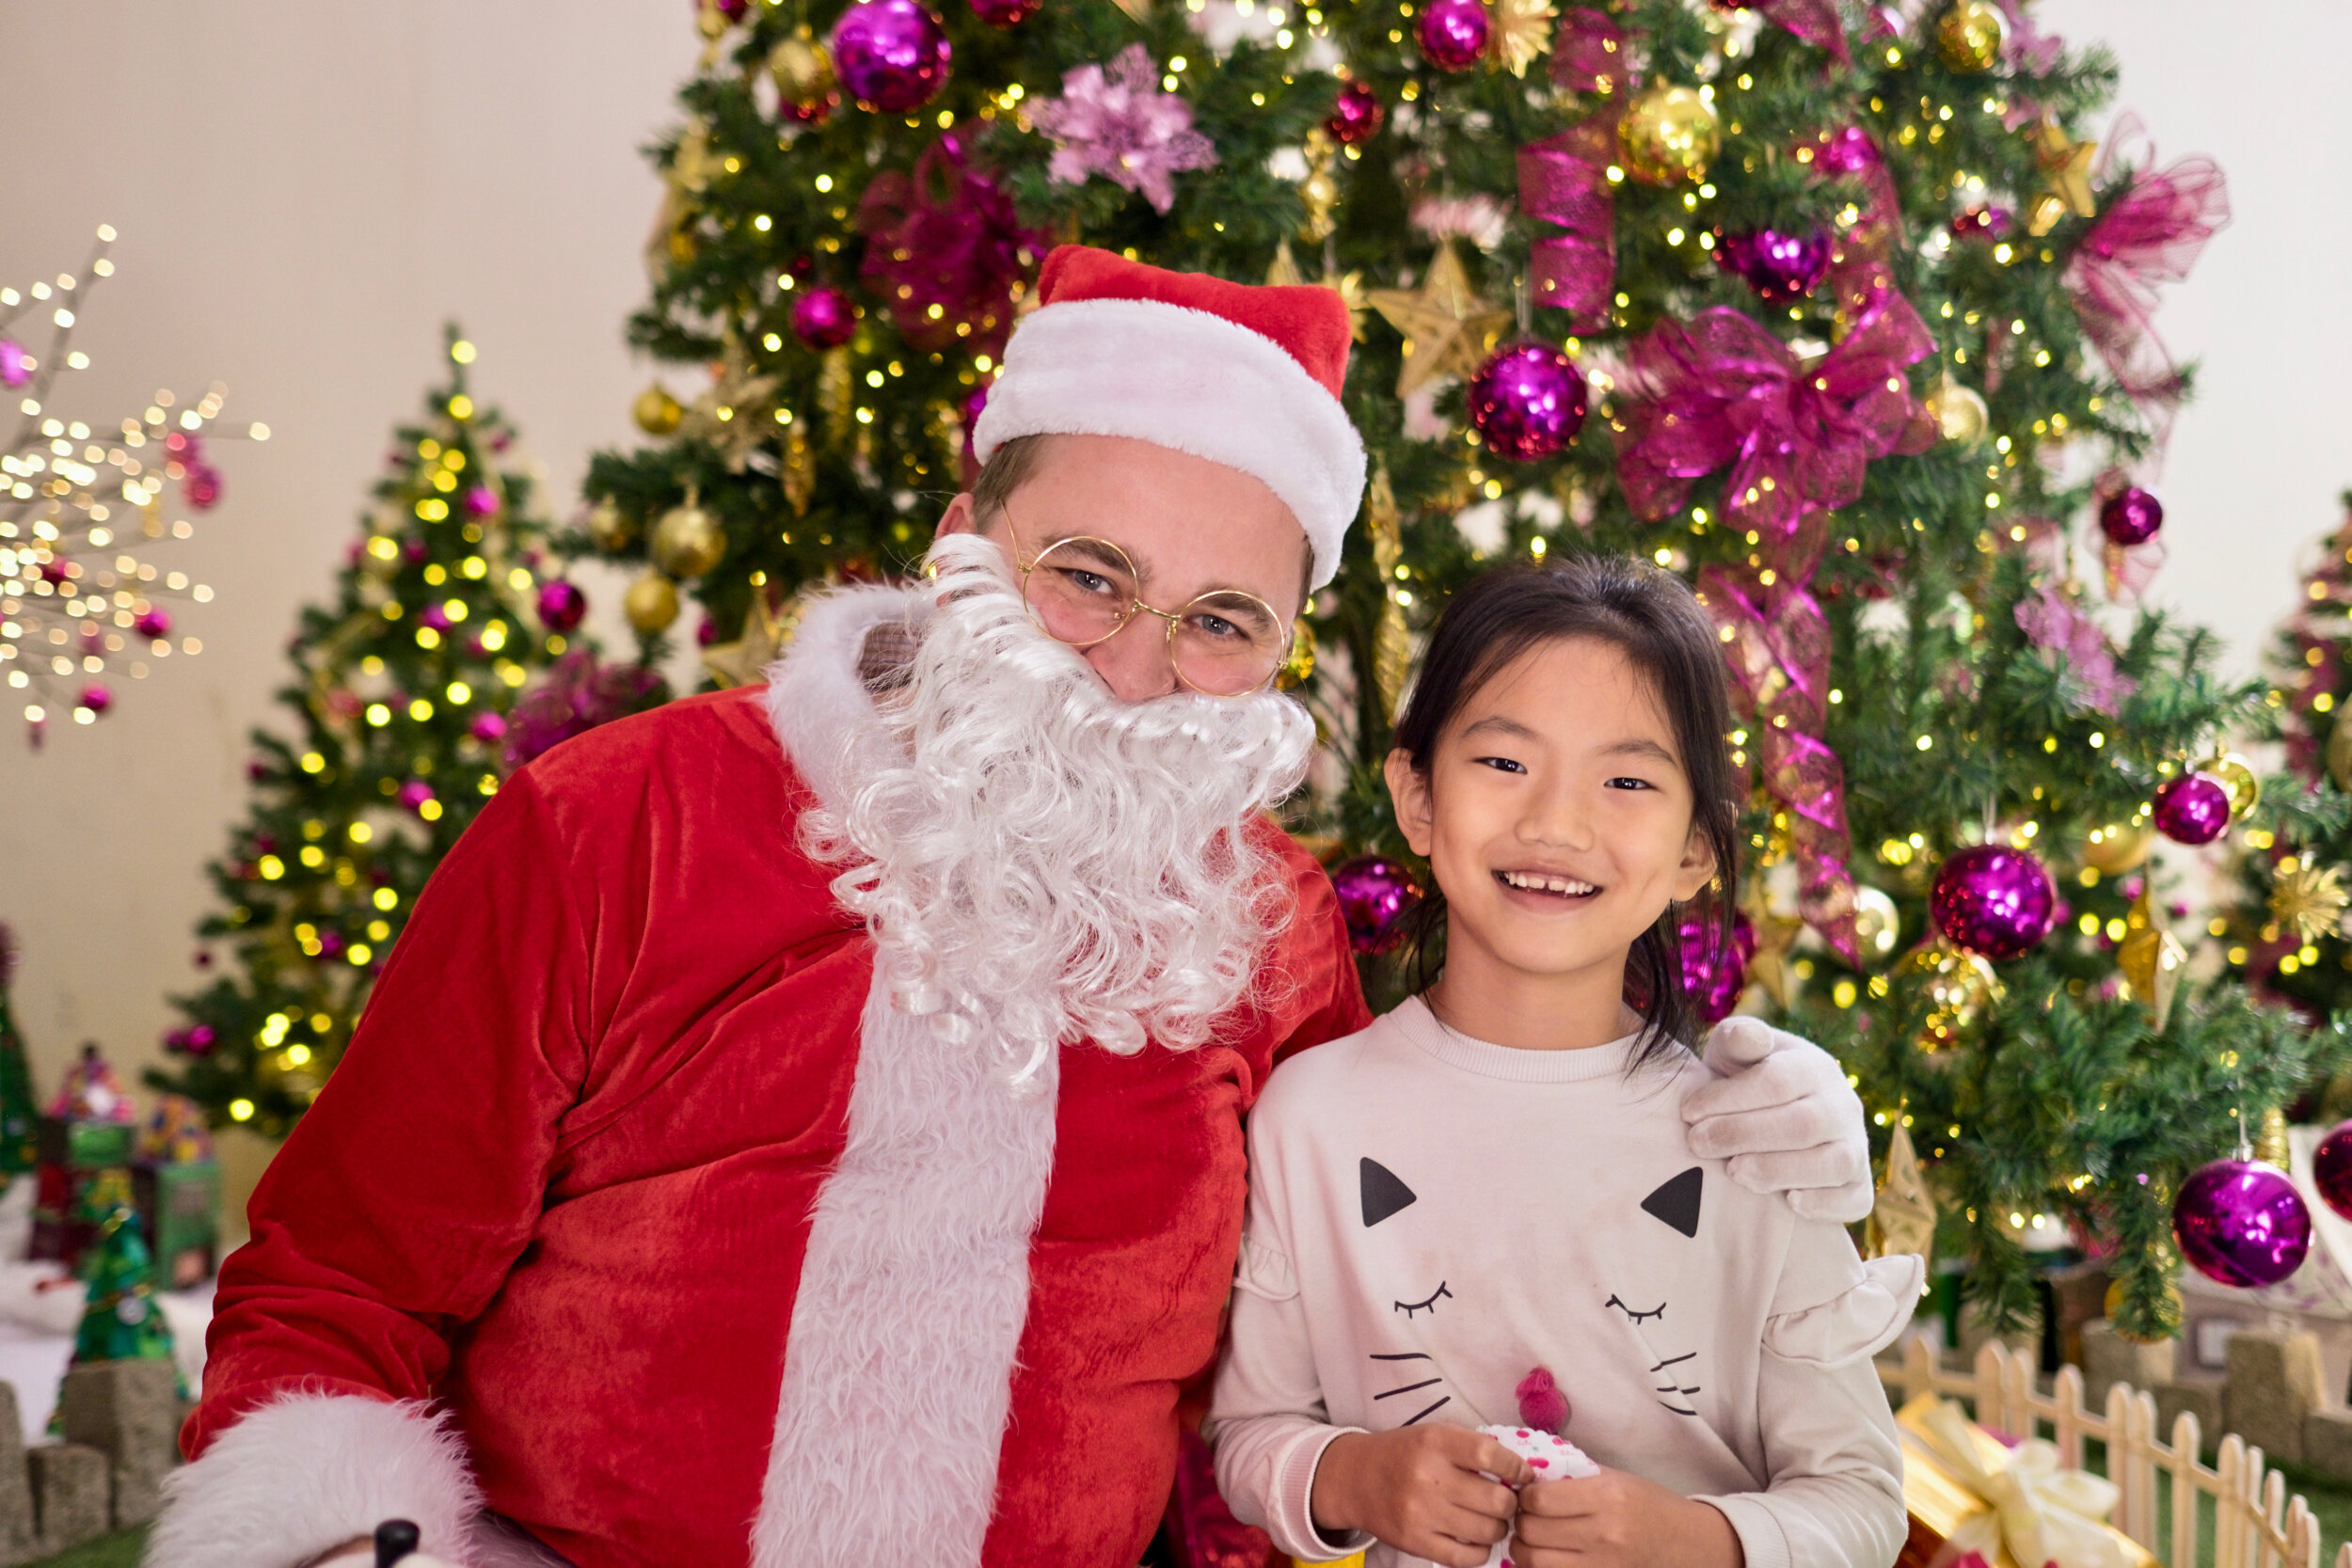 Photoshoot with Santa Clause-540.jpg